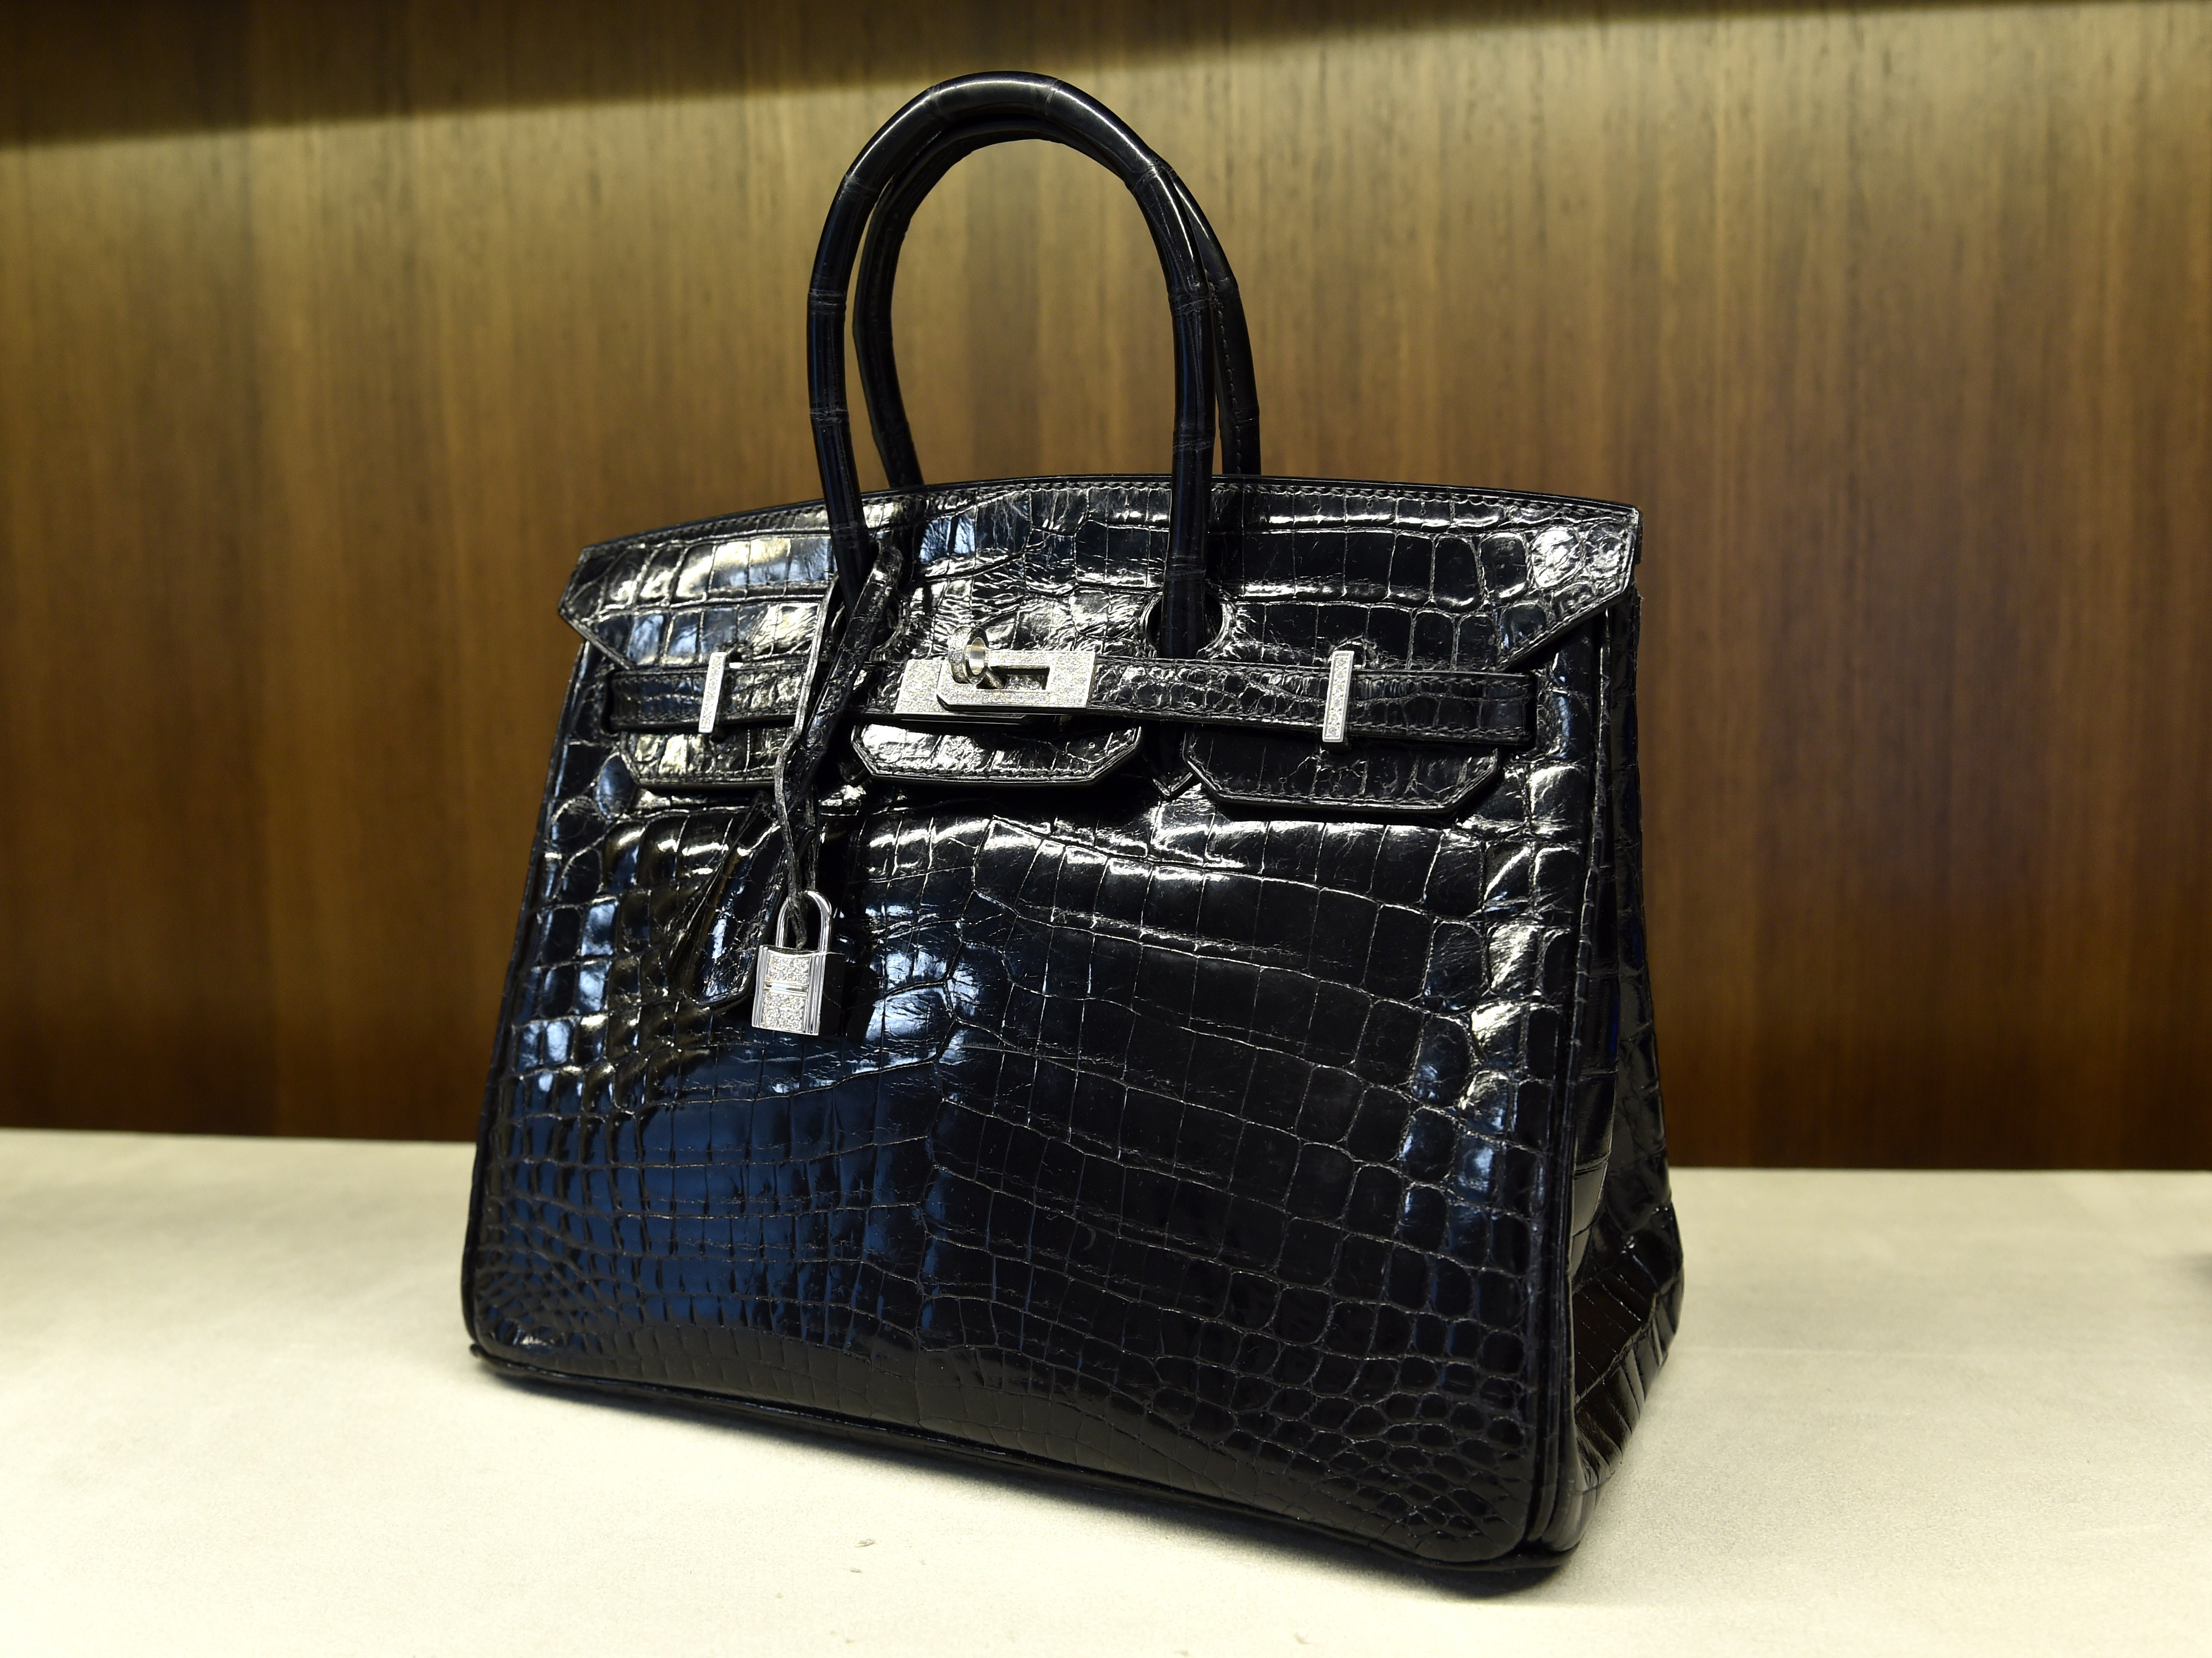 A shiny black crocodile Birkin bag is displayed in New York in 2014. Michael Cohen's plea said he failed to report proceeds of a similar bag.